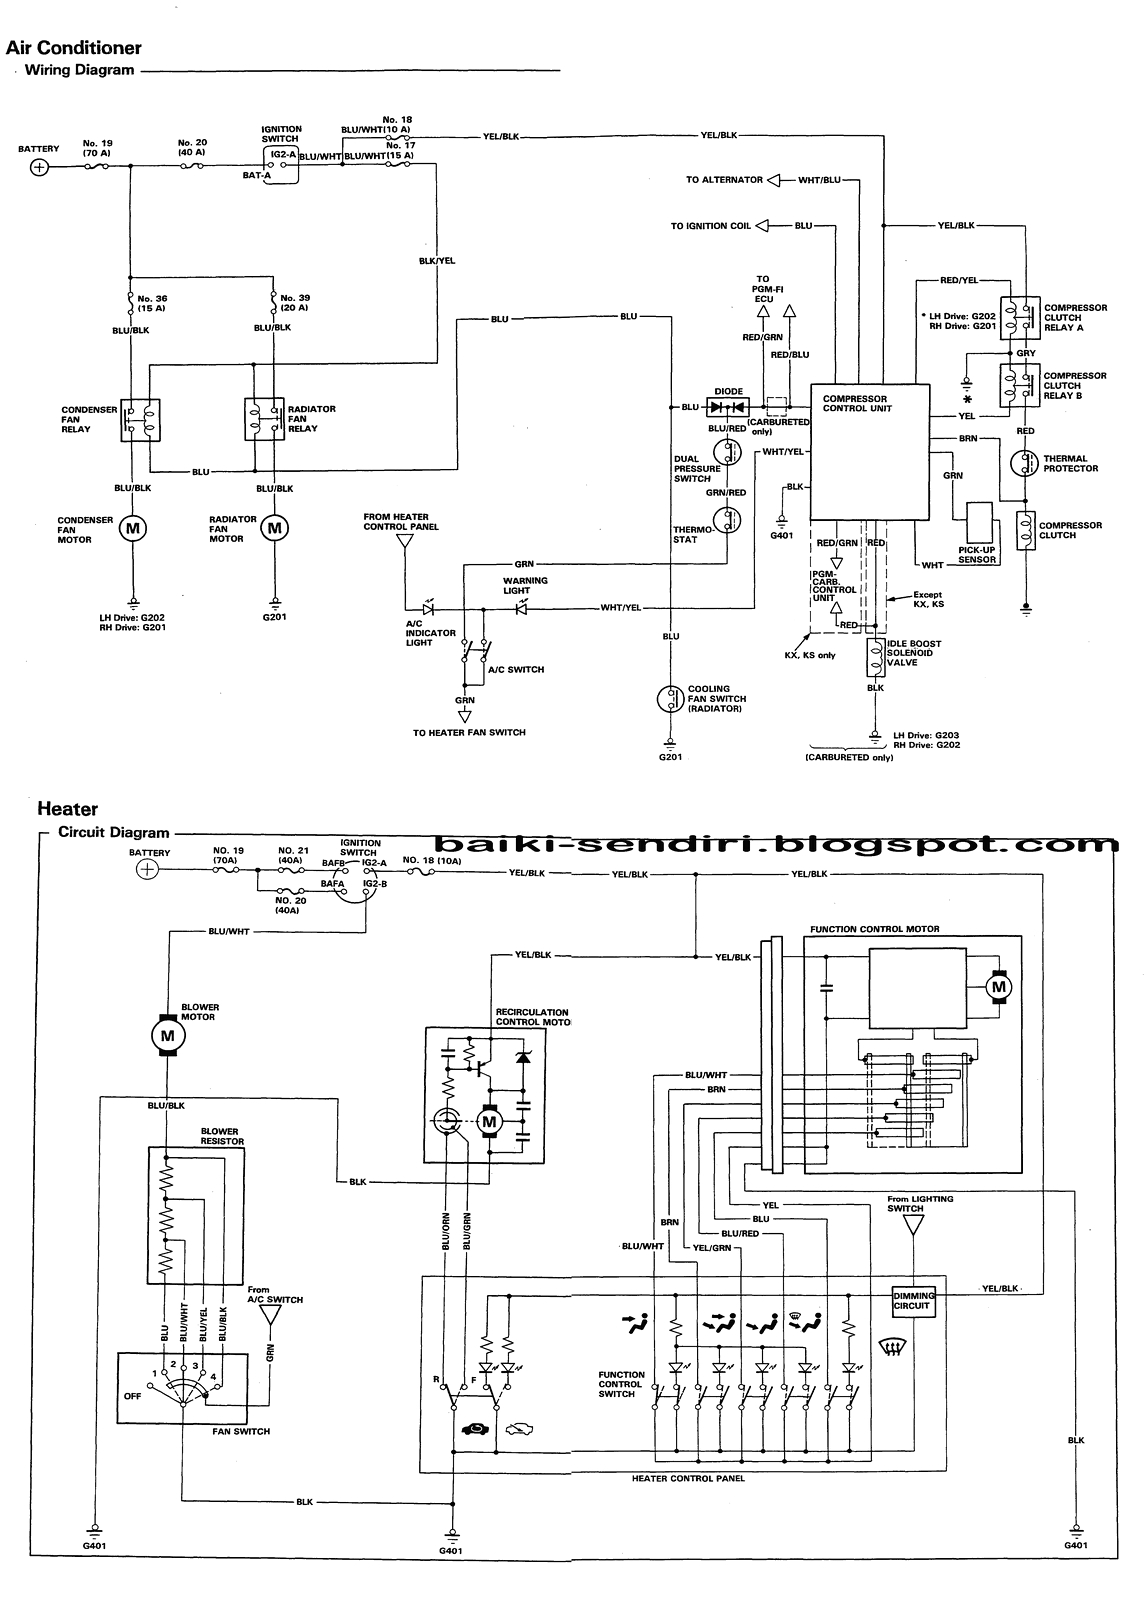 rheem air handler wiring schematic free wiring diagram. Black Bedroom Furniture Sets. Home Design Ideas